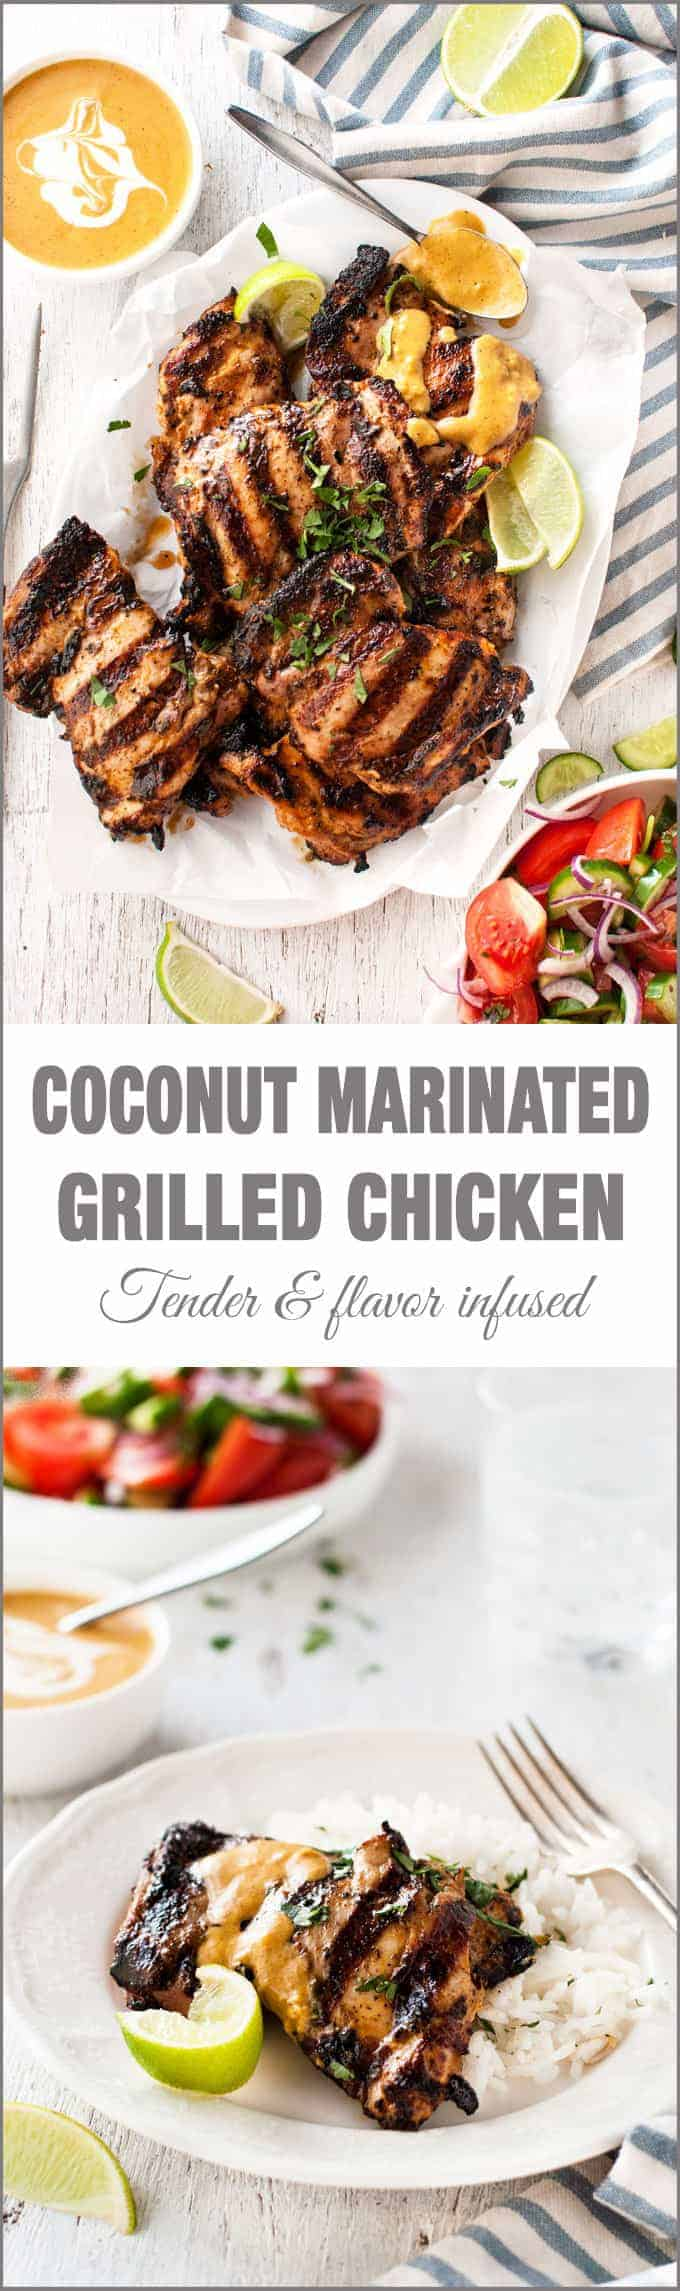 Coconut Marinated Grilled Chicken - the coconut marinade infuses the chicken with rich flavour and tenderises the meat. And the sauce is incredible!